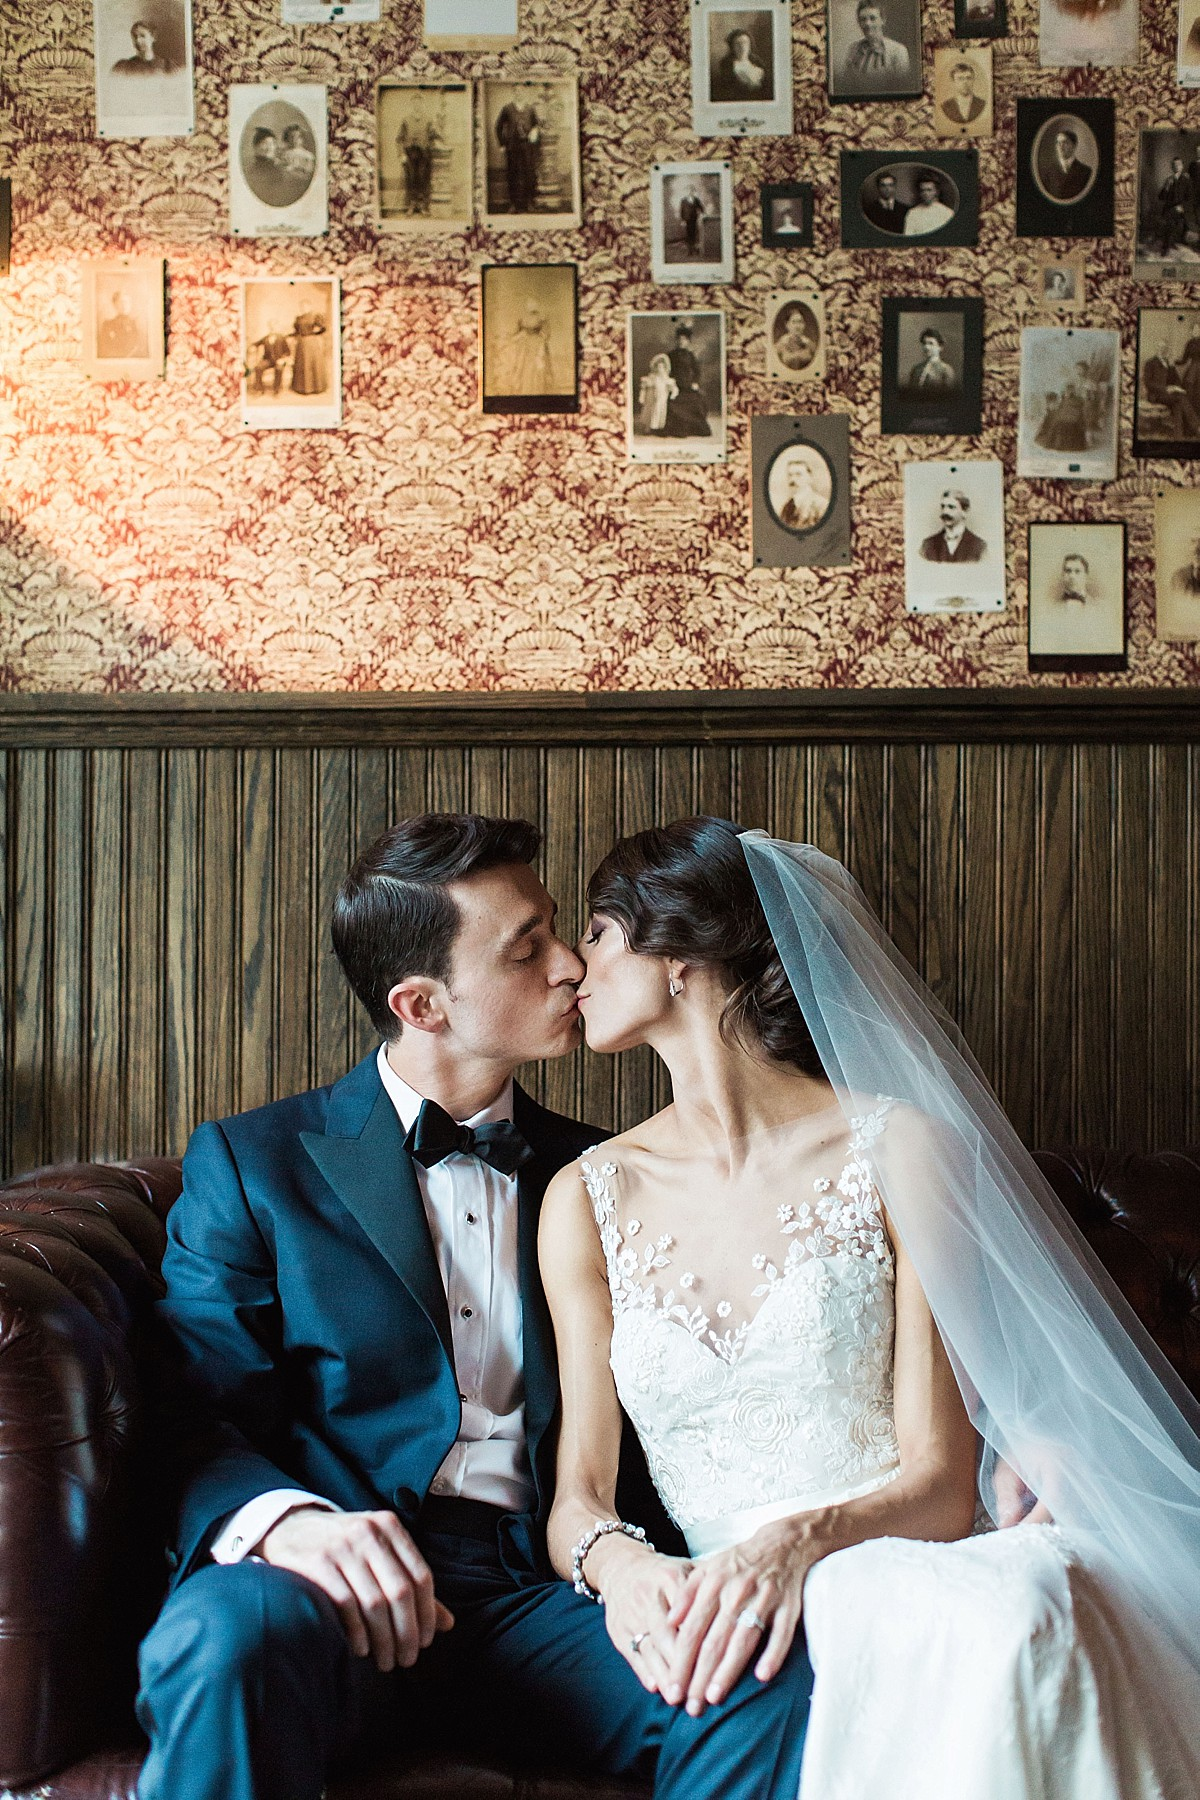 Couples portraits in the Brooklyn Winery portraits room by Clean Plate Pictures, Brooklyn Winery Wedding Photographer